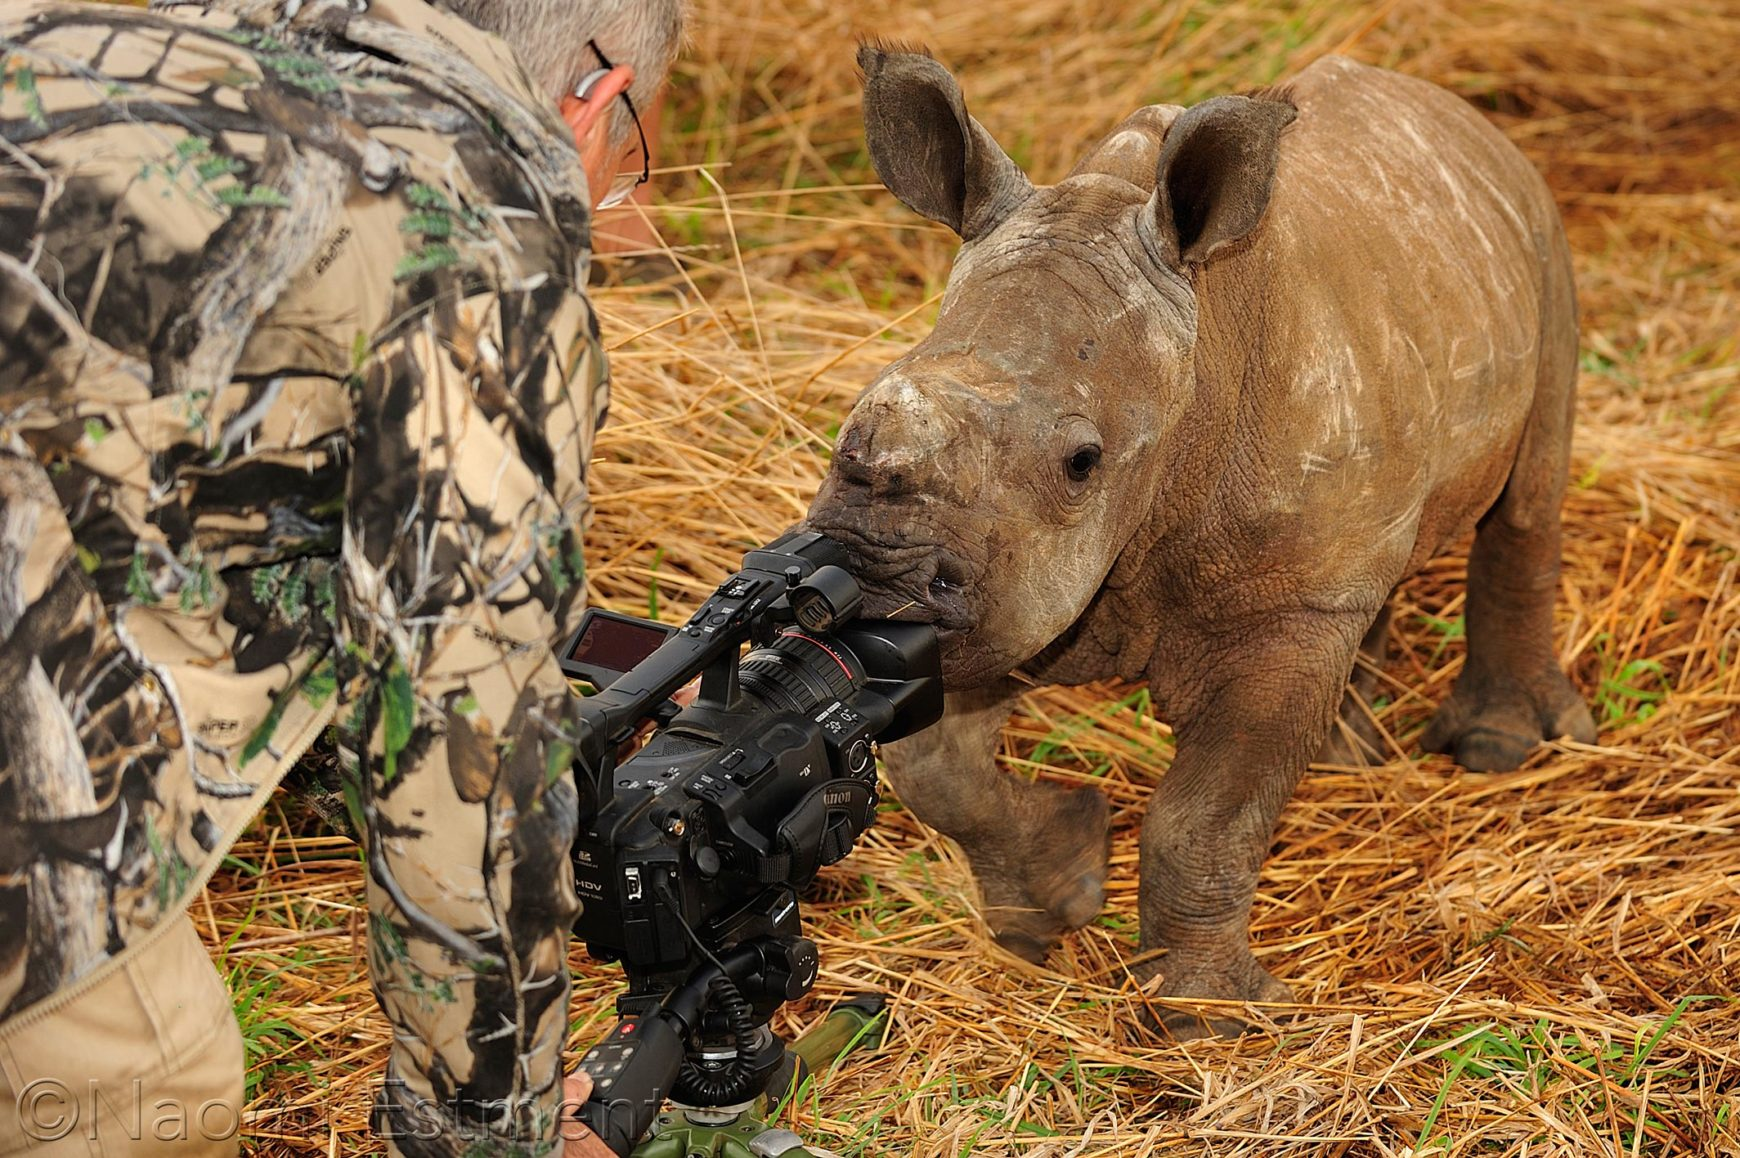 Dave Estment with rhino calf sucking his camera